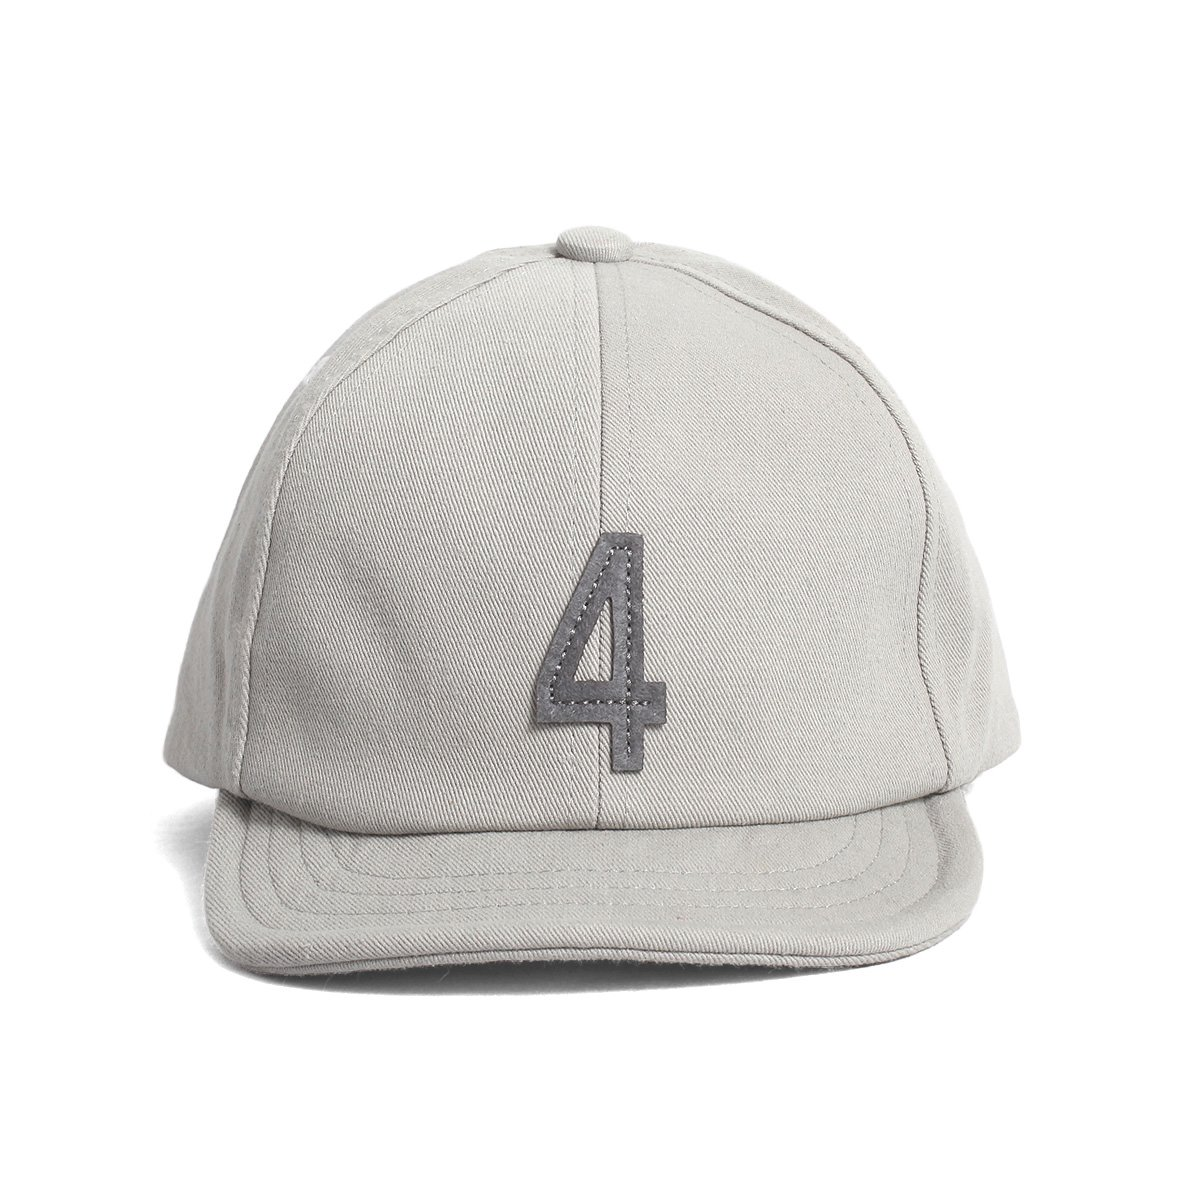 Kids Number Cap